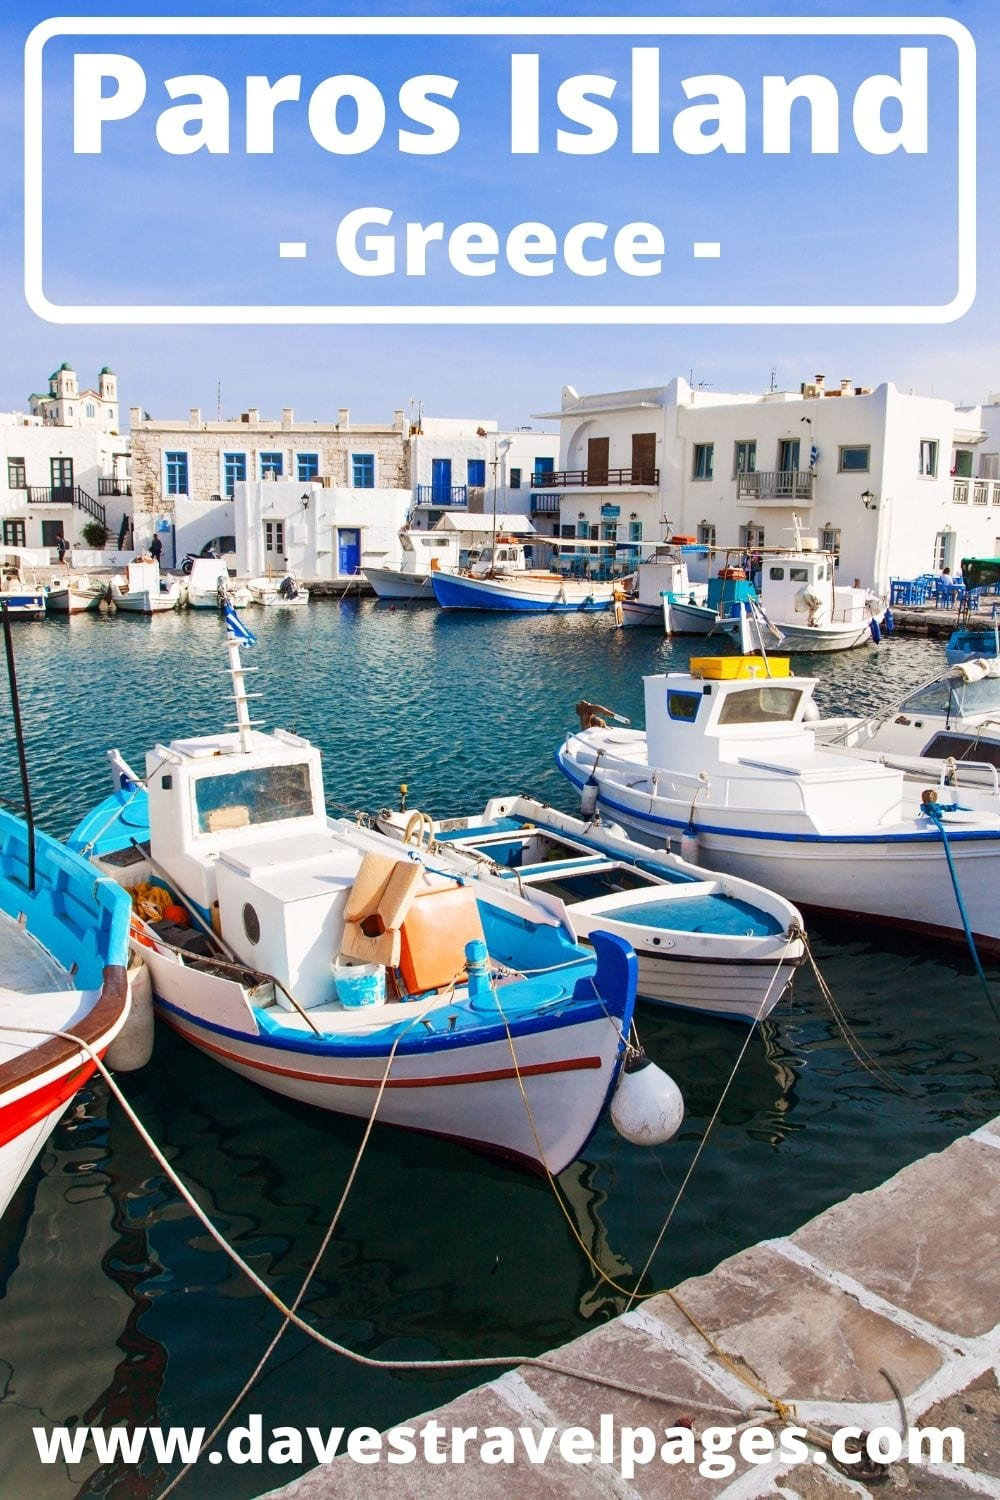 Ferries to Paros island in Greece from Syros